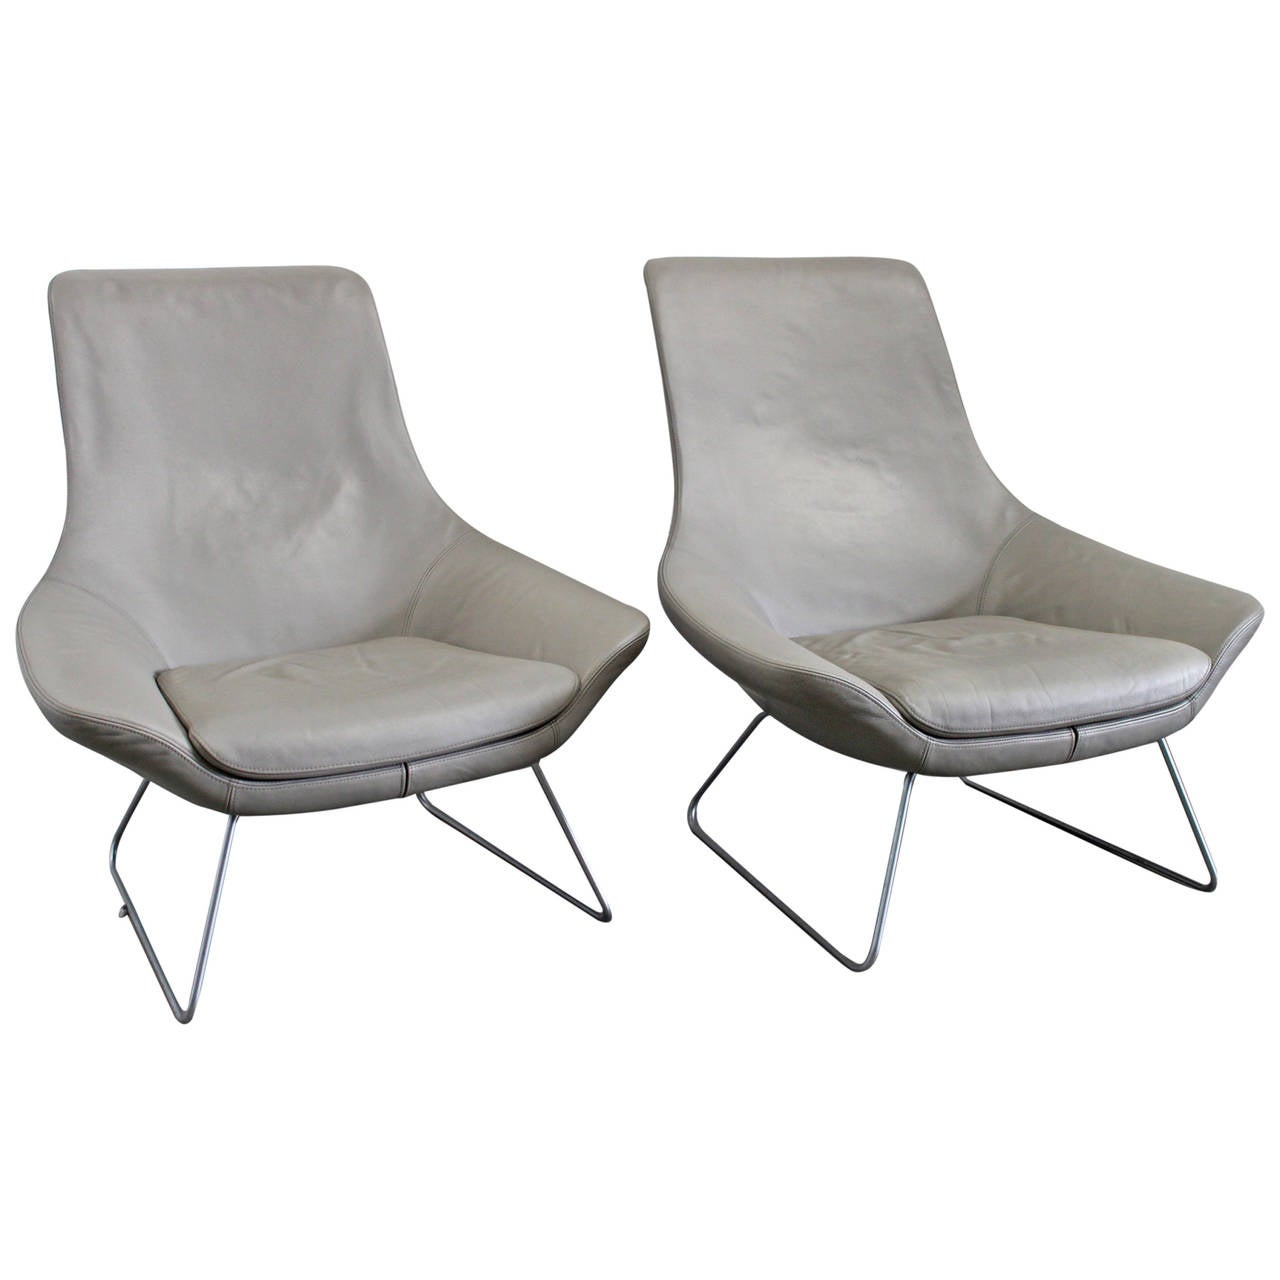 walter knoll flow 210 10 armchairs in grey leather by. Black Bedroom Furniture Sets. Home Design Ideas